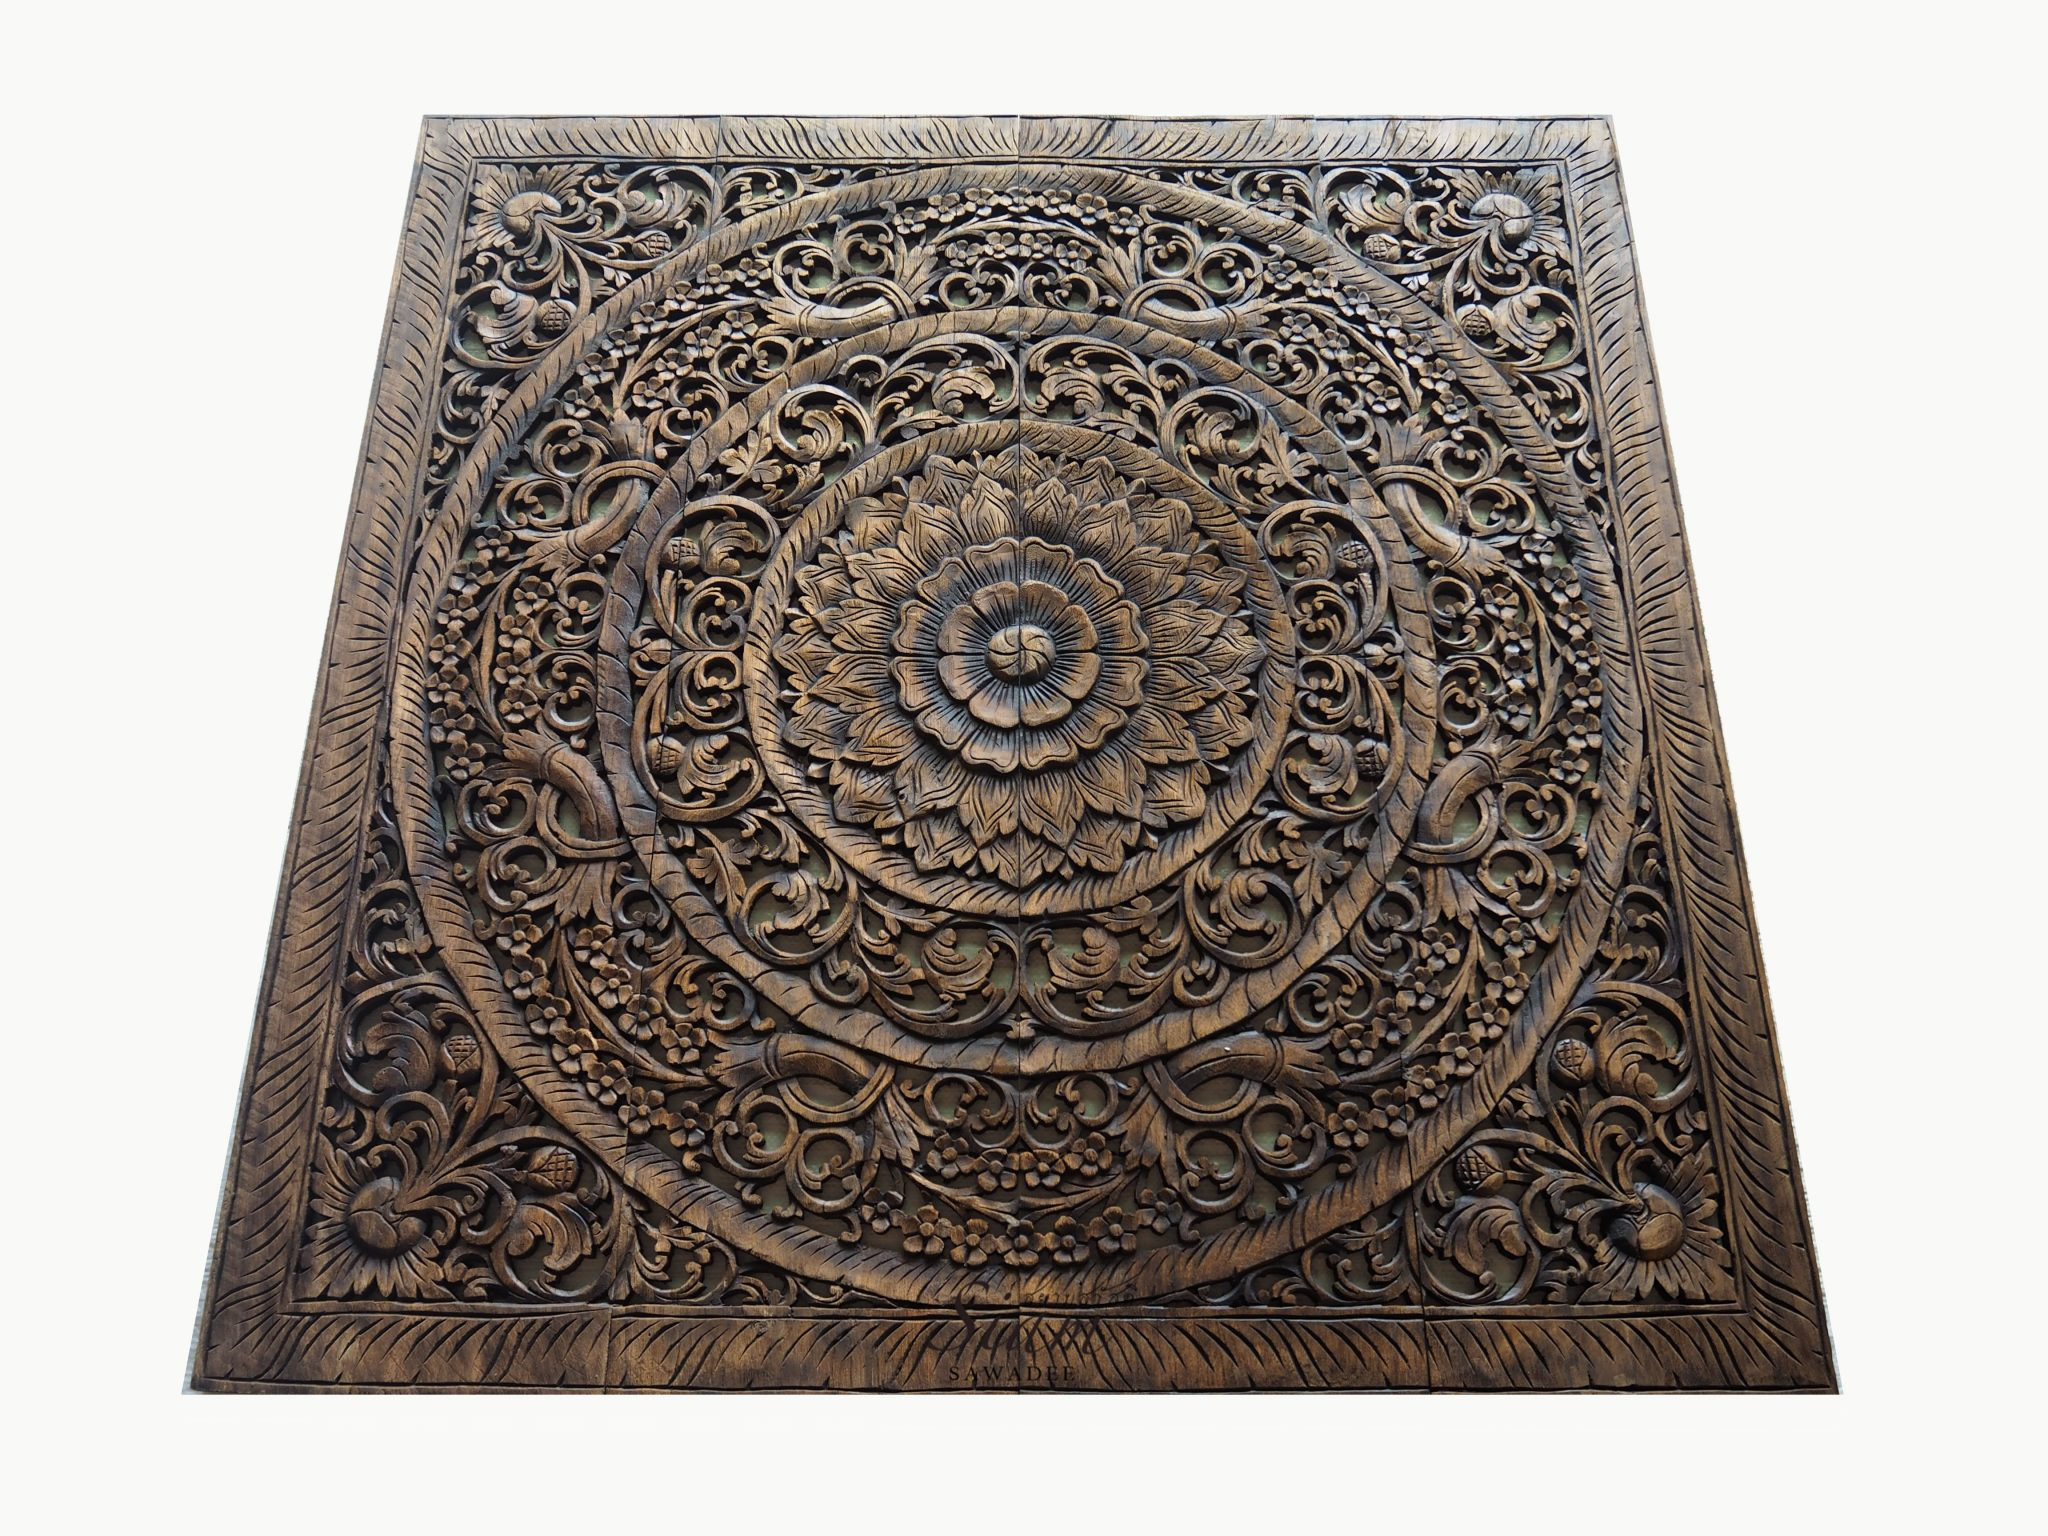 Wall Decor Wood Panel Grand Carved Teak Wood Wall Art Panel Plaque Decor